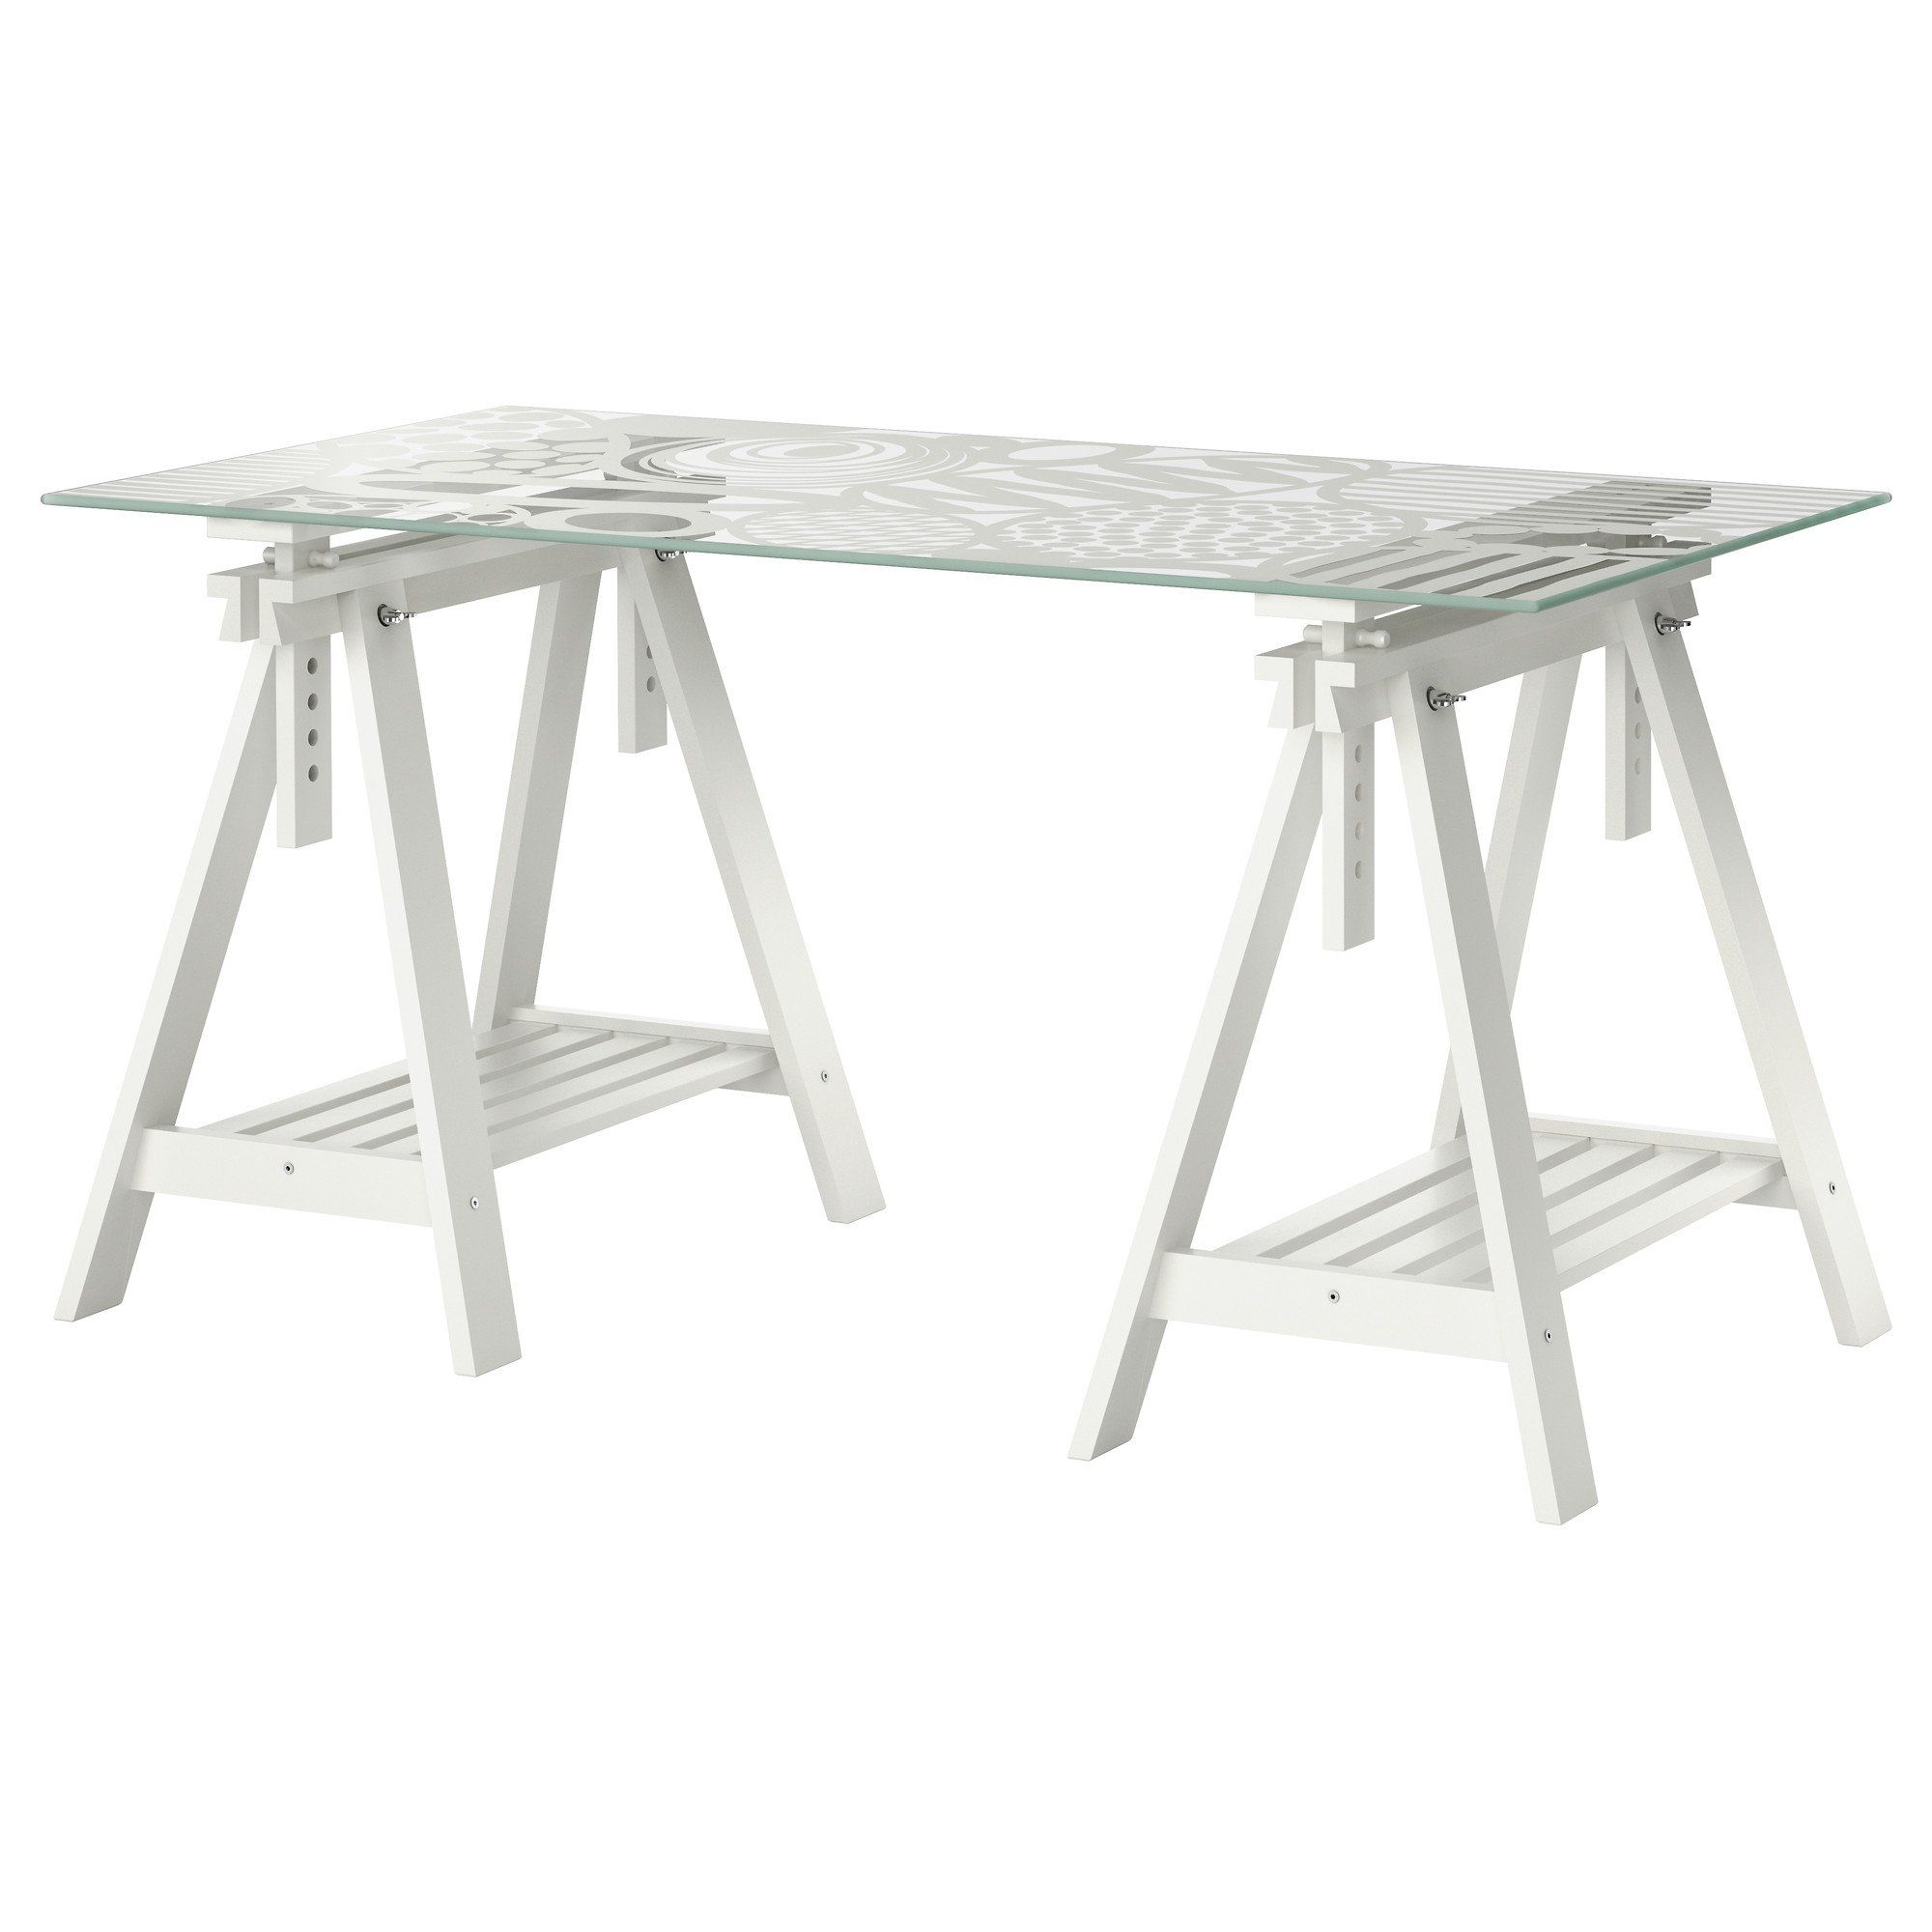 Grey Glass Ikea Table Tops With White Wooden Bar Legs And Striped .